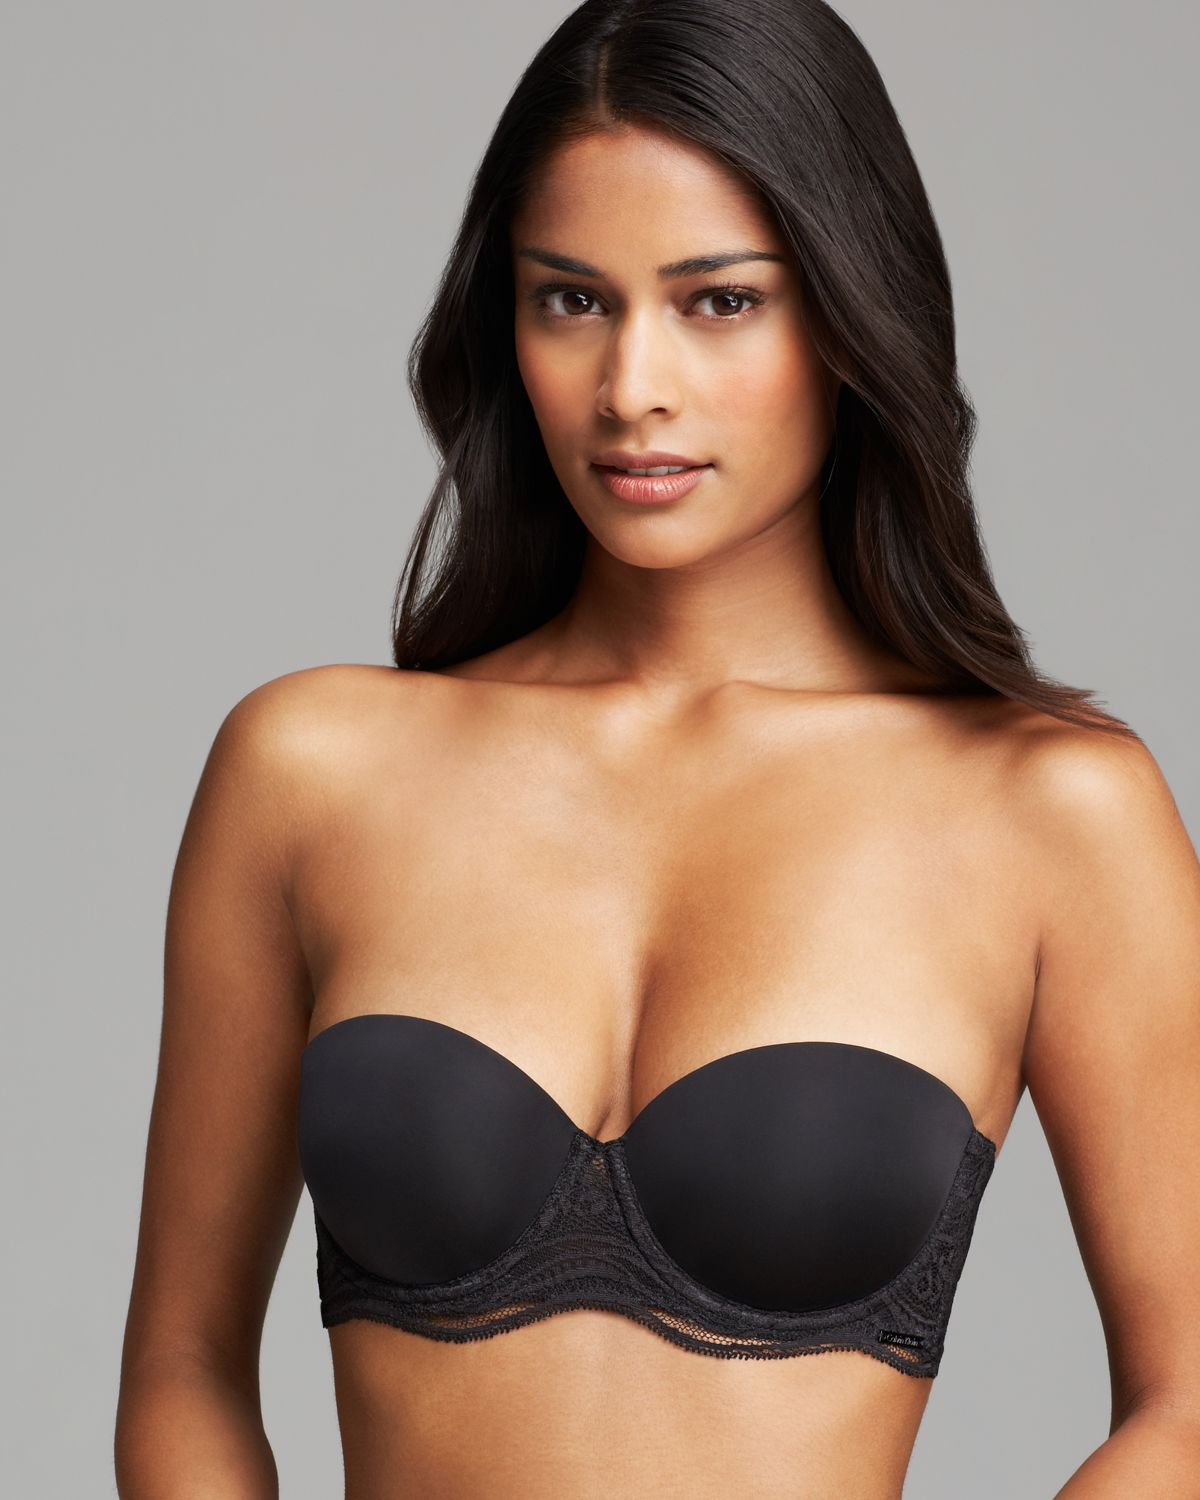 Calvin klein Bra - Infinite Lace Multi Way Strapless Push Up ...